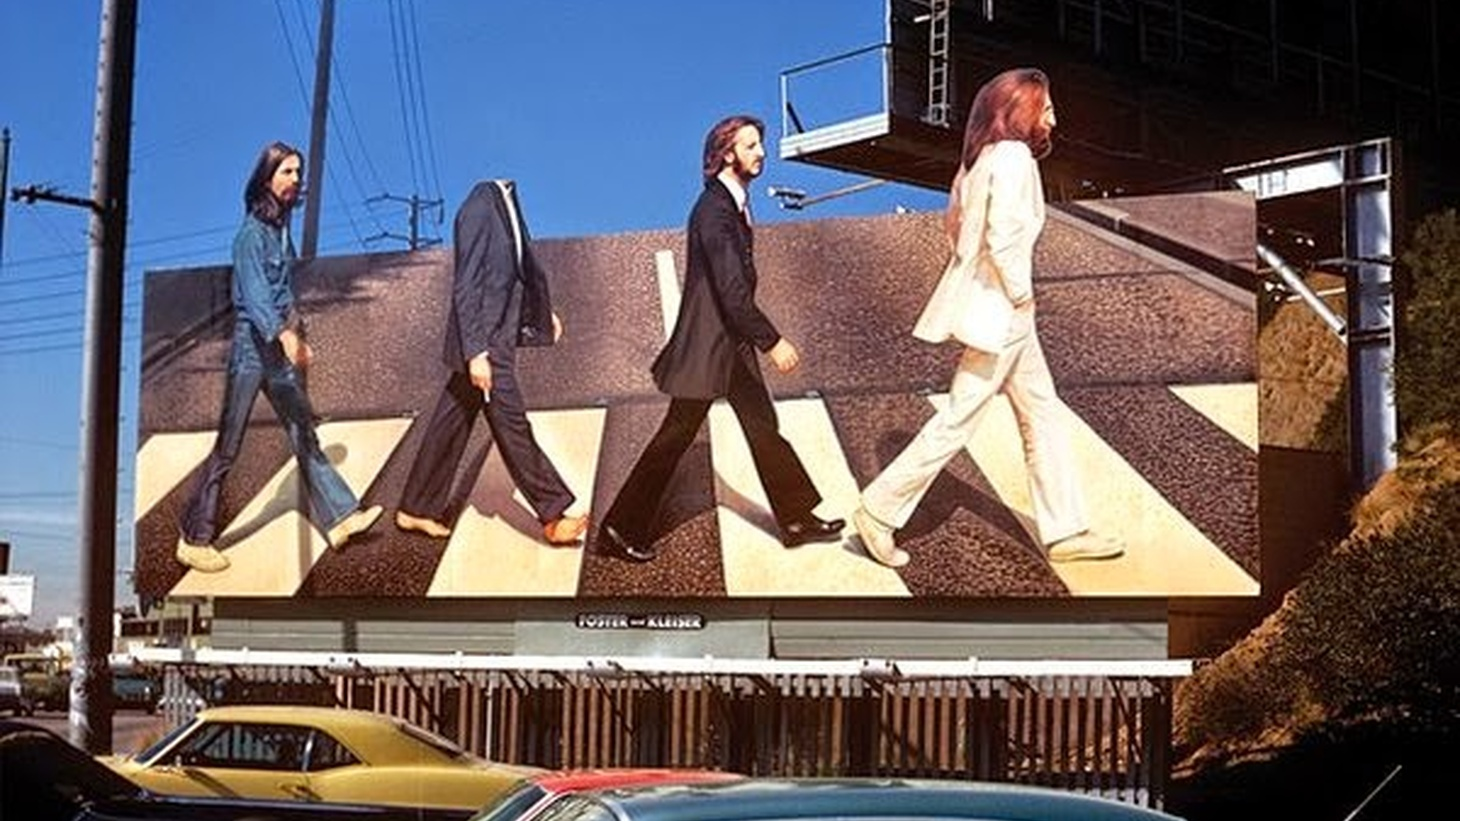 The headless Paul McCartney in Robert Landau's photo of the Abbey Road billboard on the Sunset Strip.